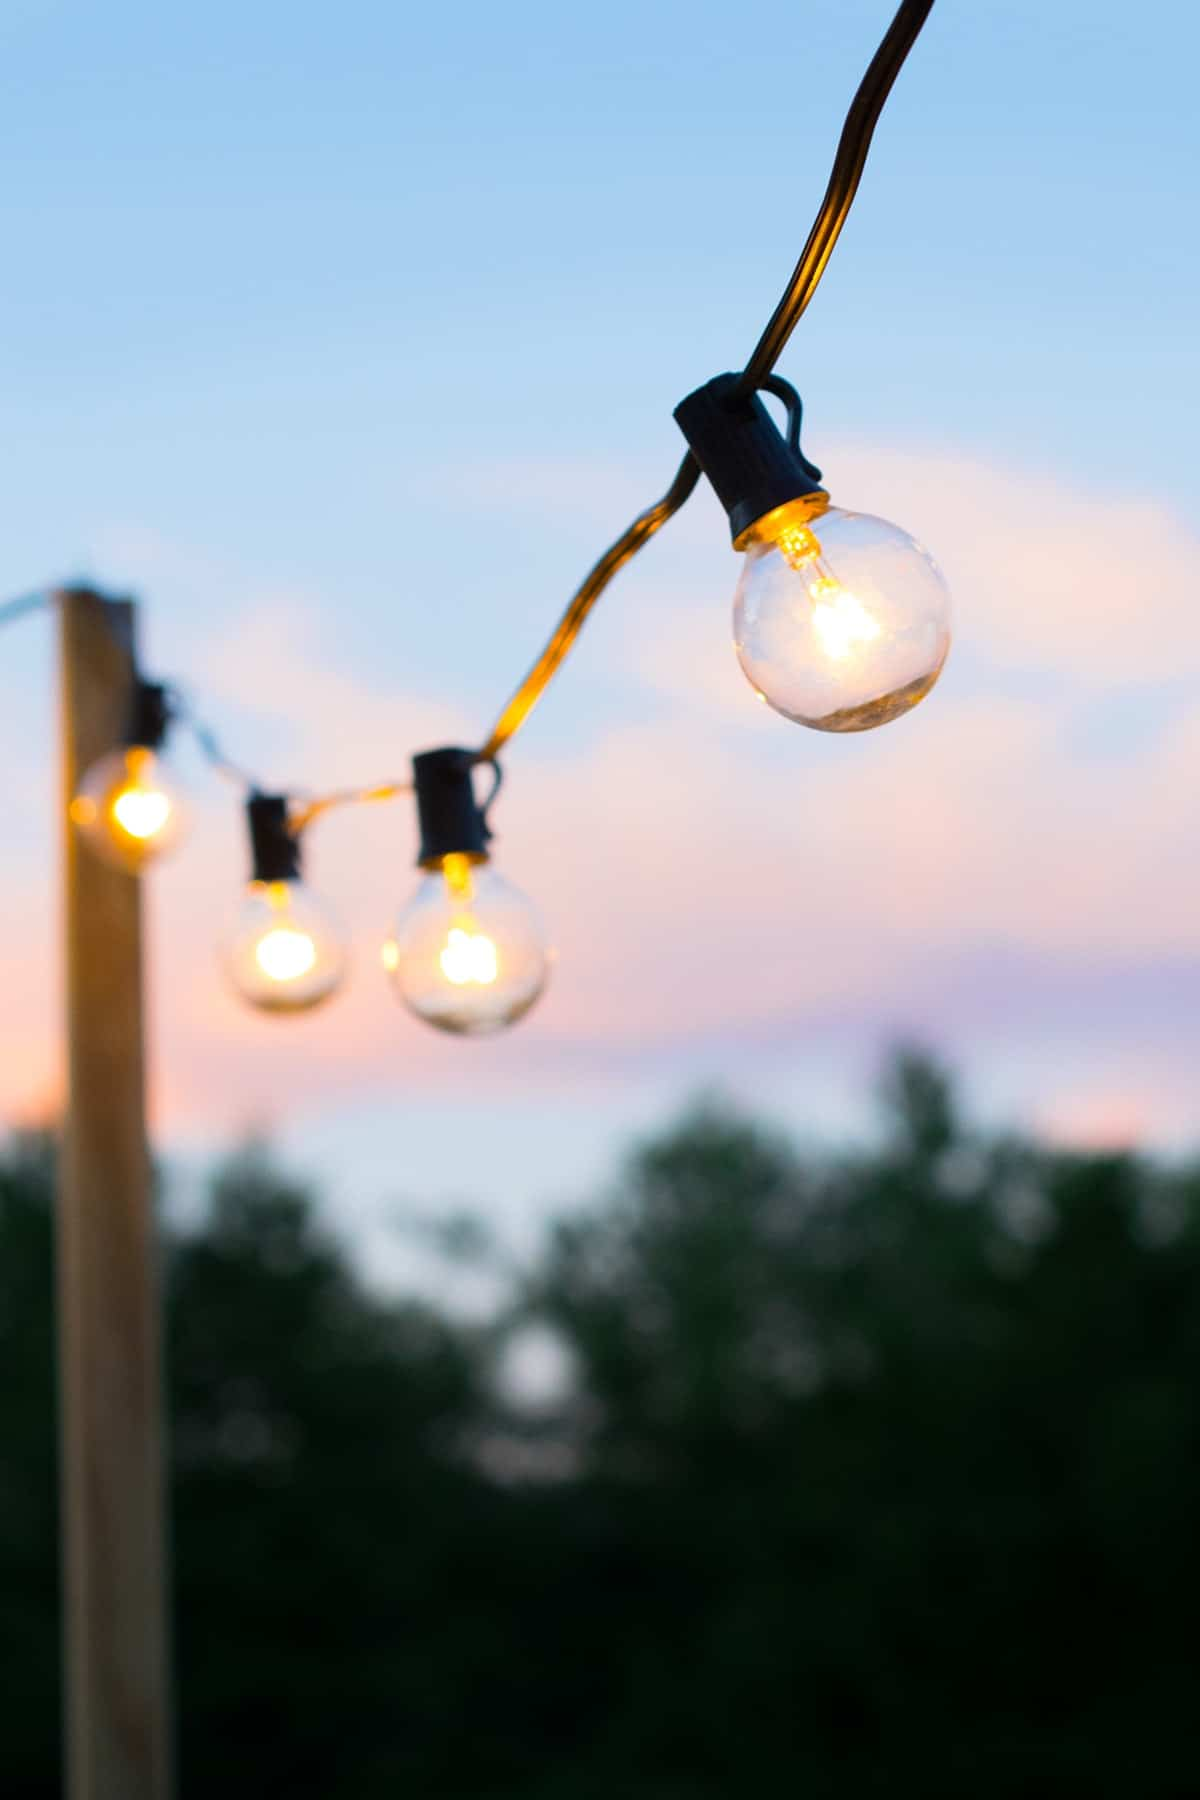 Outdoor String Lights Summer : Outdoor Deck String Lights for Fun Summer Nights - Craving some Creativity